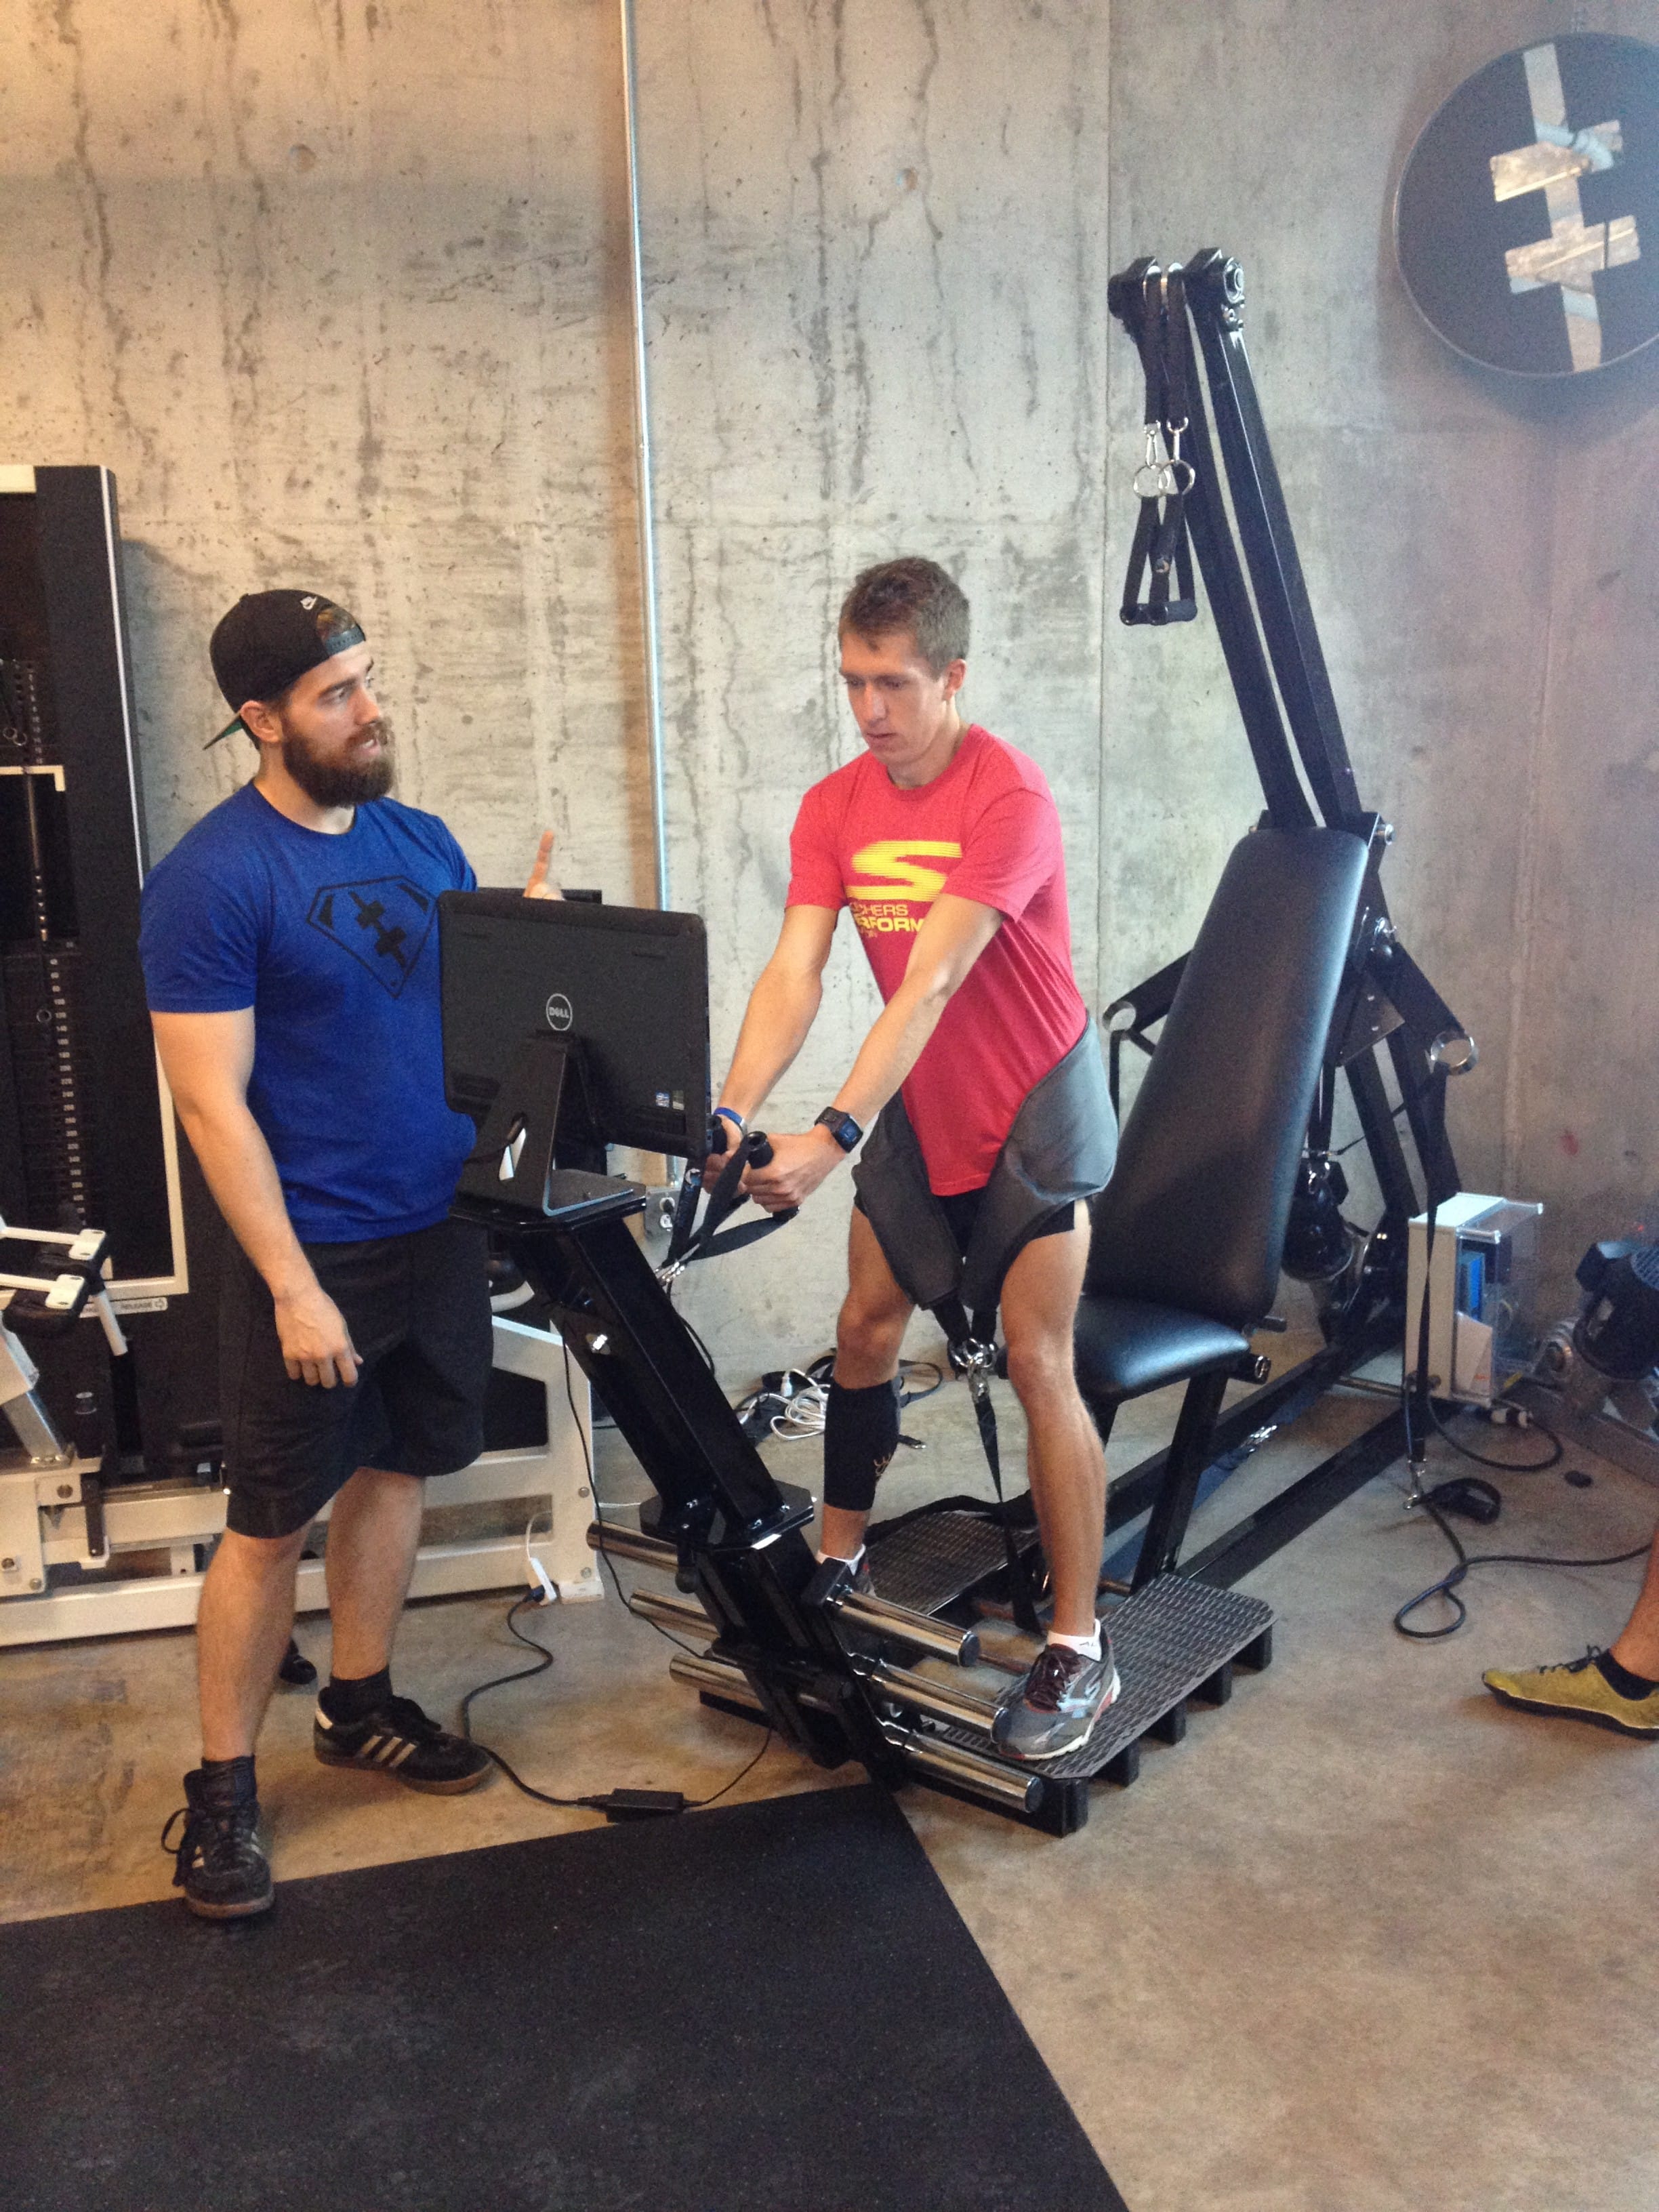 Bo Alexander (L) instructs Shane Niksic on how to read the data display while performing belt squats with the ARX machine.